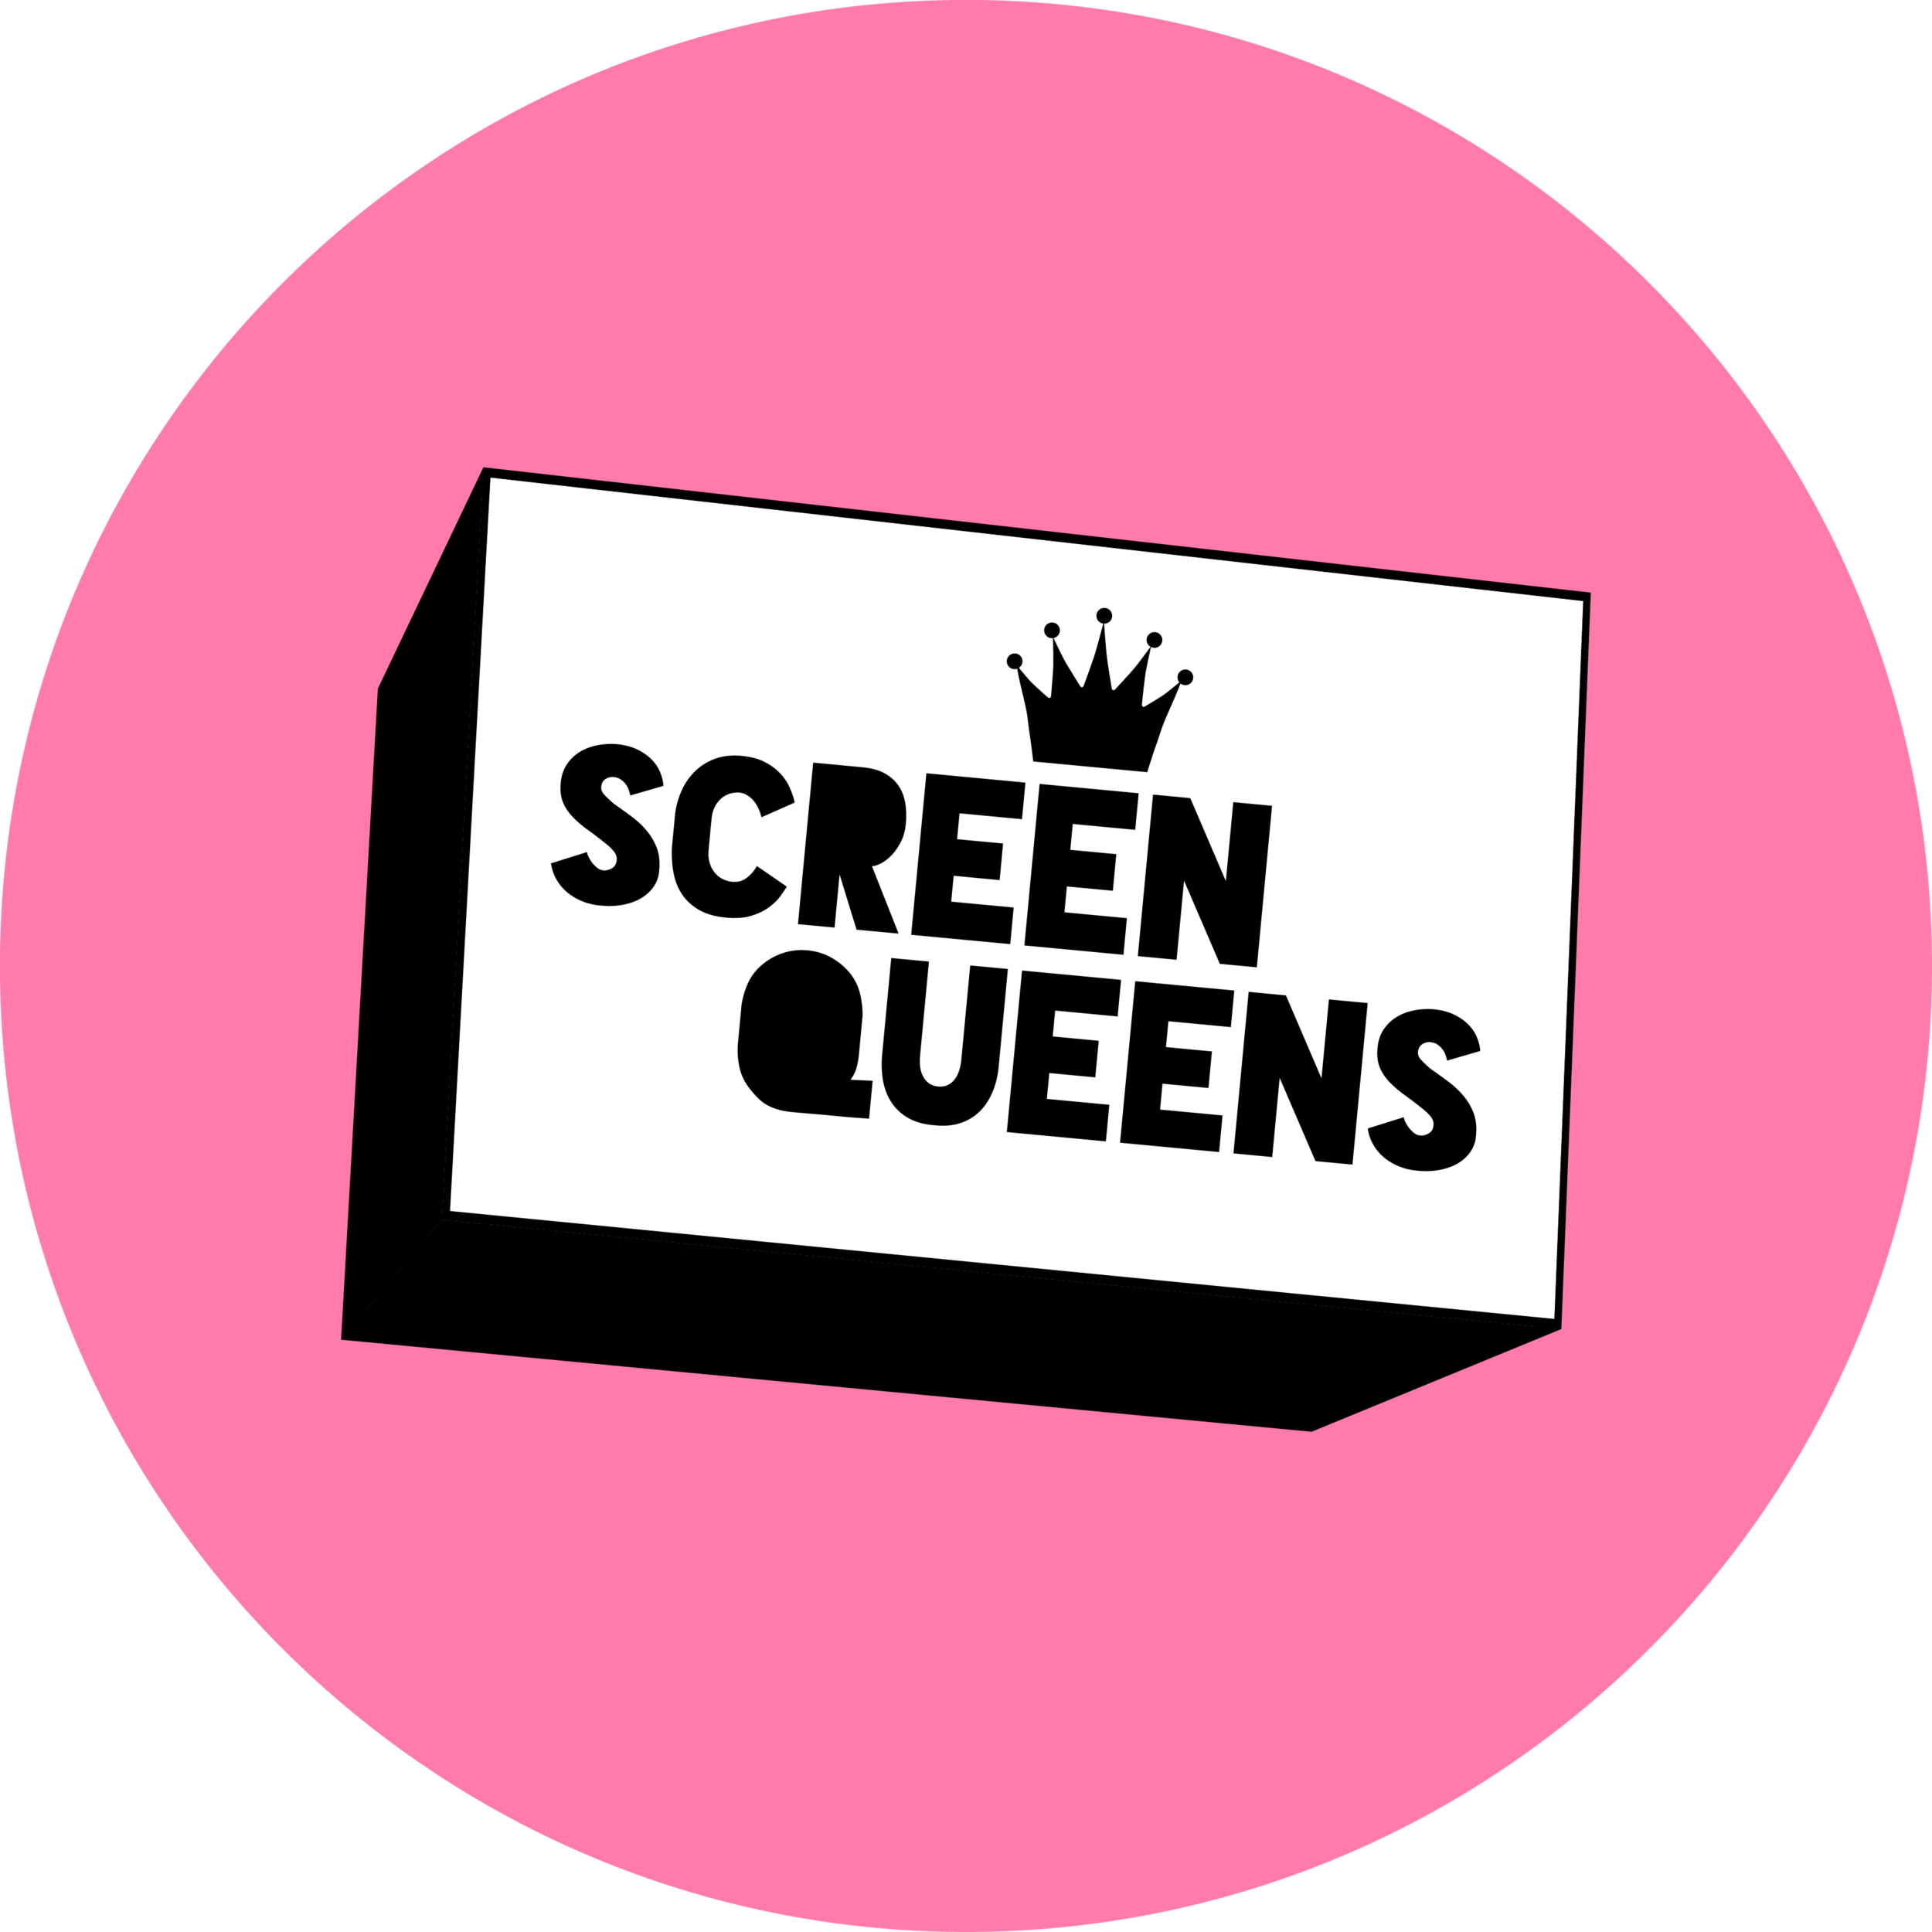 - Screen Queens is a blog created and written by young women and members of the LGBT community. It a safe space to critically discuss film & TV with a strong focus on the exposure of women-centric and women-made films.